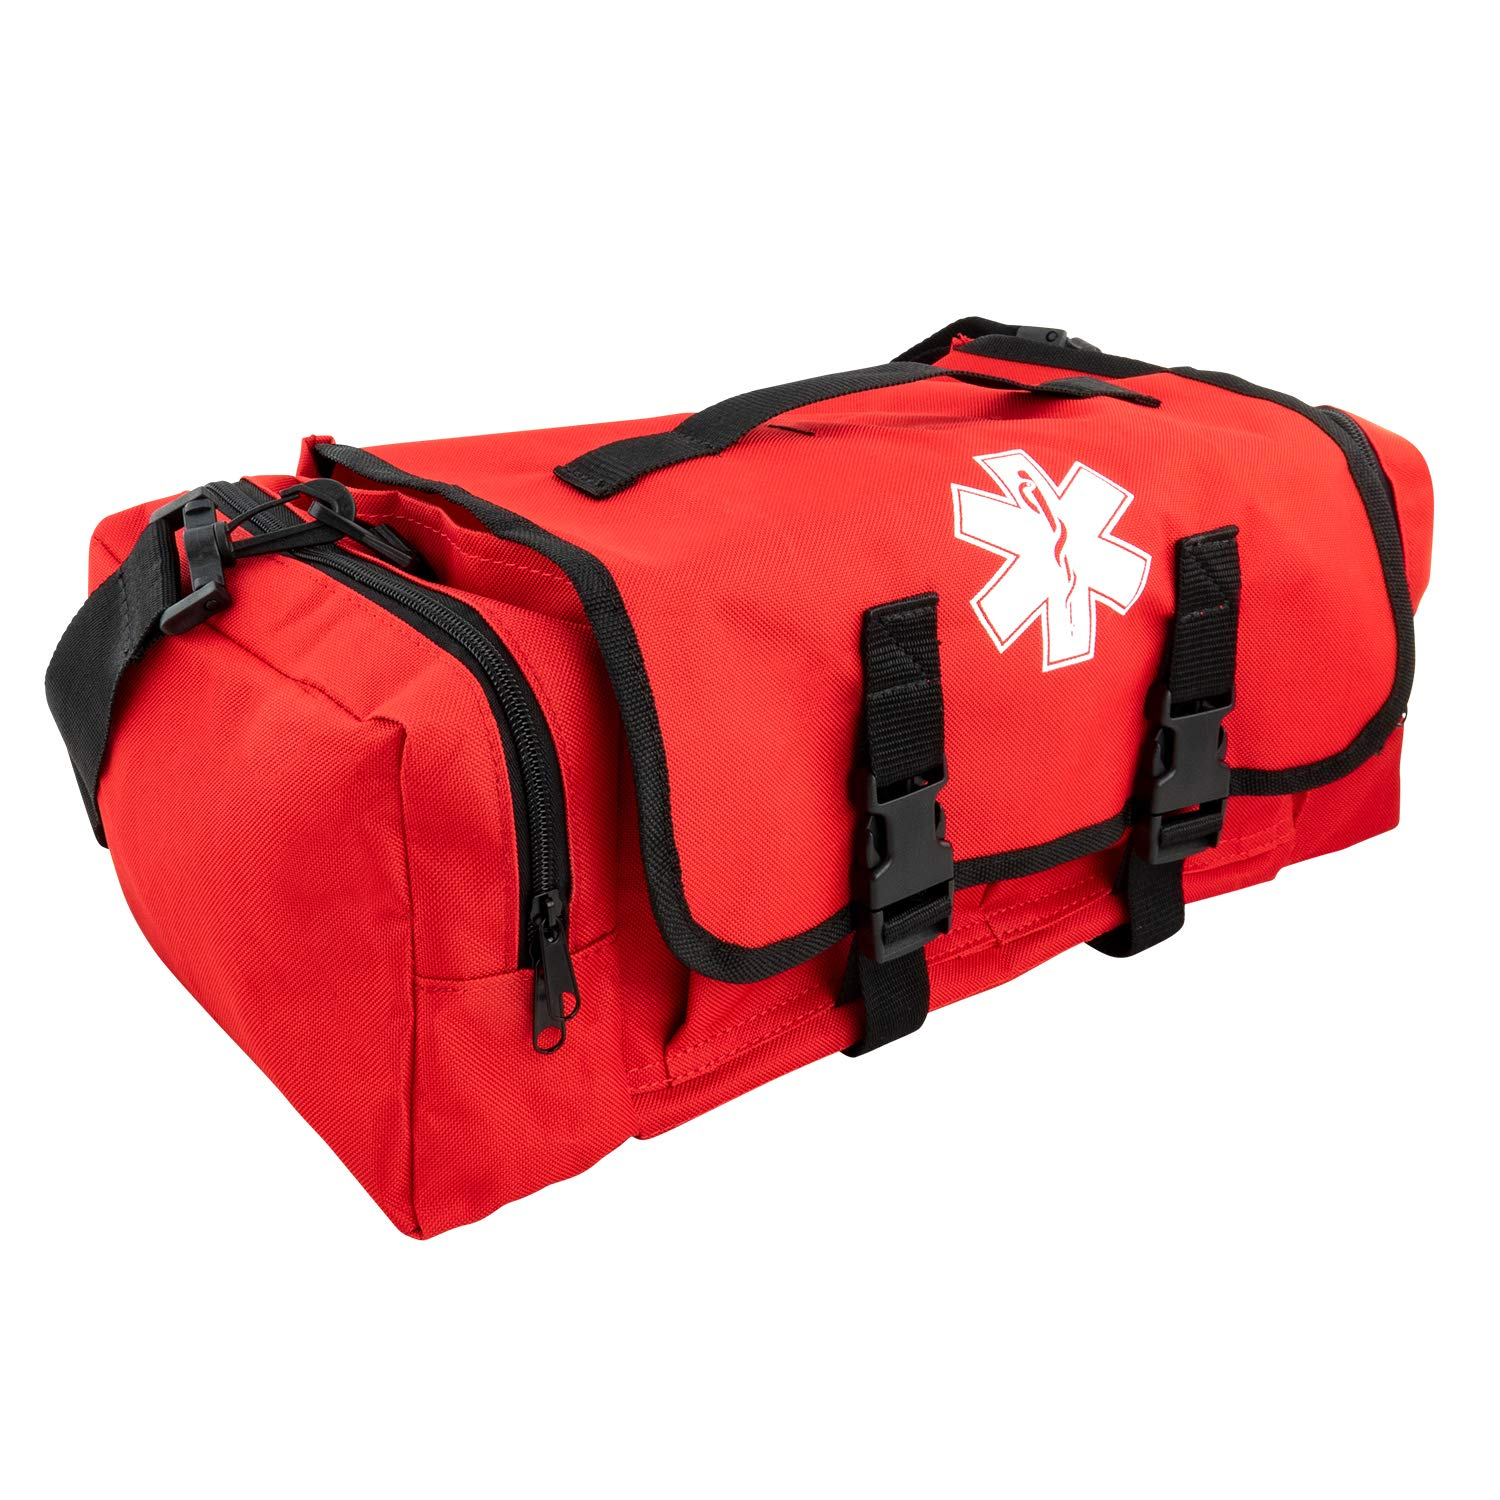 Emergency Fire First Responder Kit Fully Stocked Aid Rescue Trauma Bag Professional Liuard Ems Emt Paramedic Complete Medical Supplies